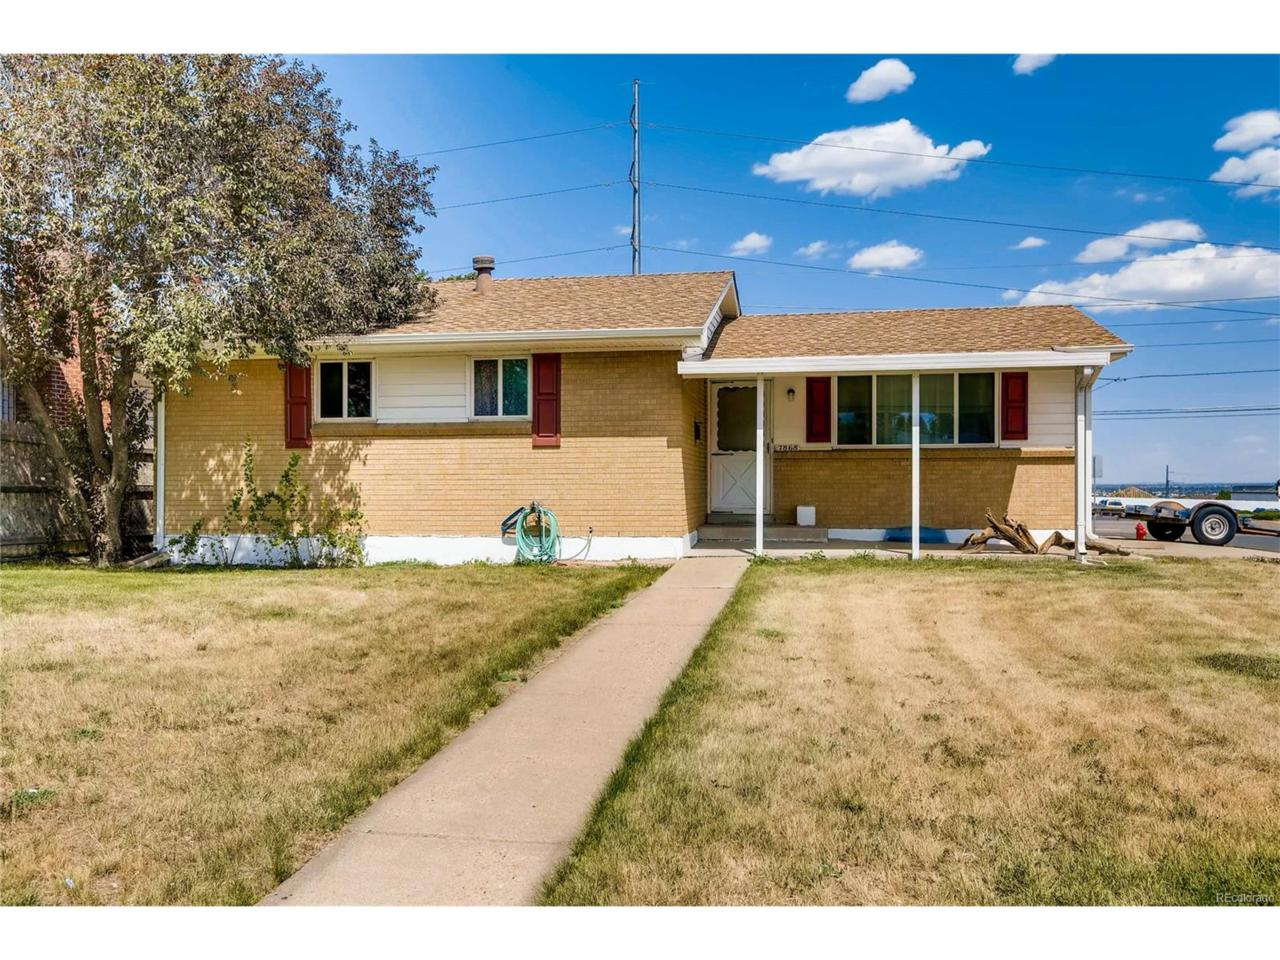 7868 Pearl Street, Denver, CO 80229 (MLS #4534586) :: 8z Real Estate